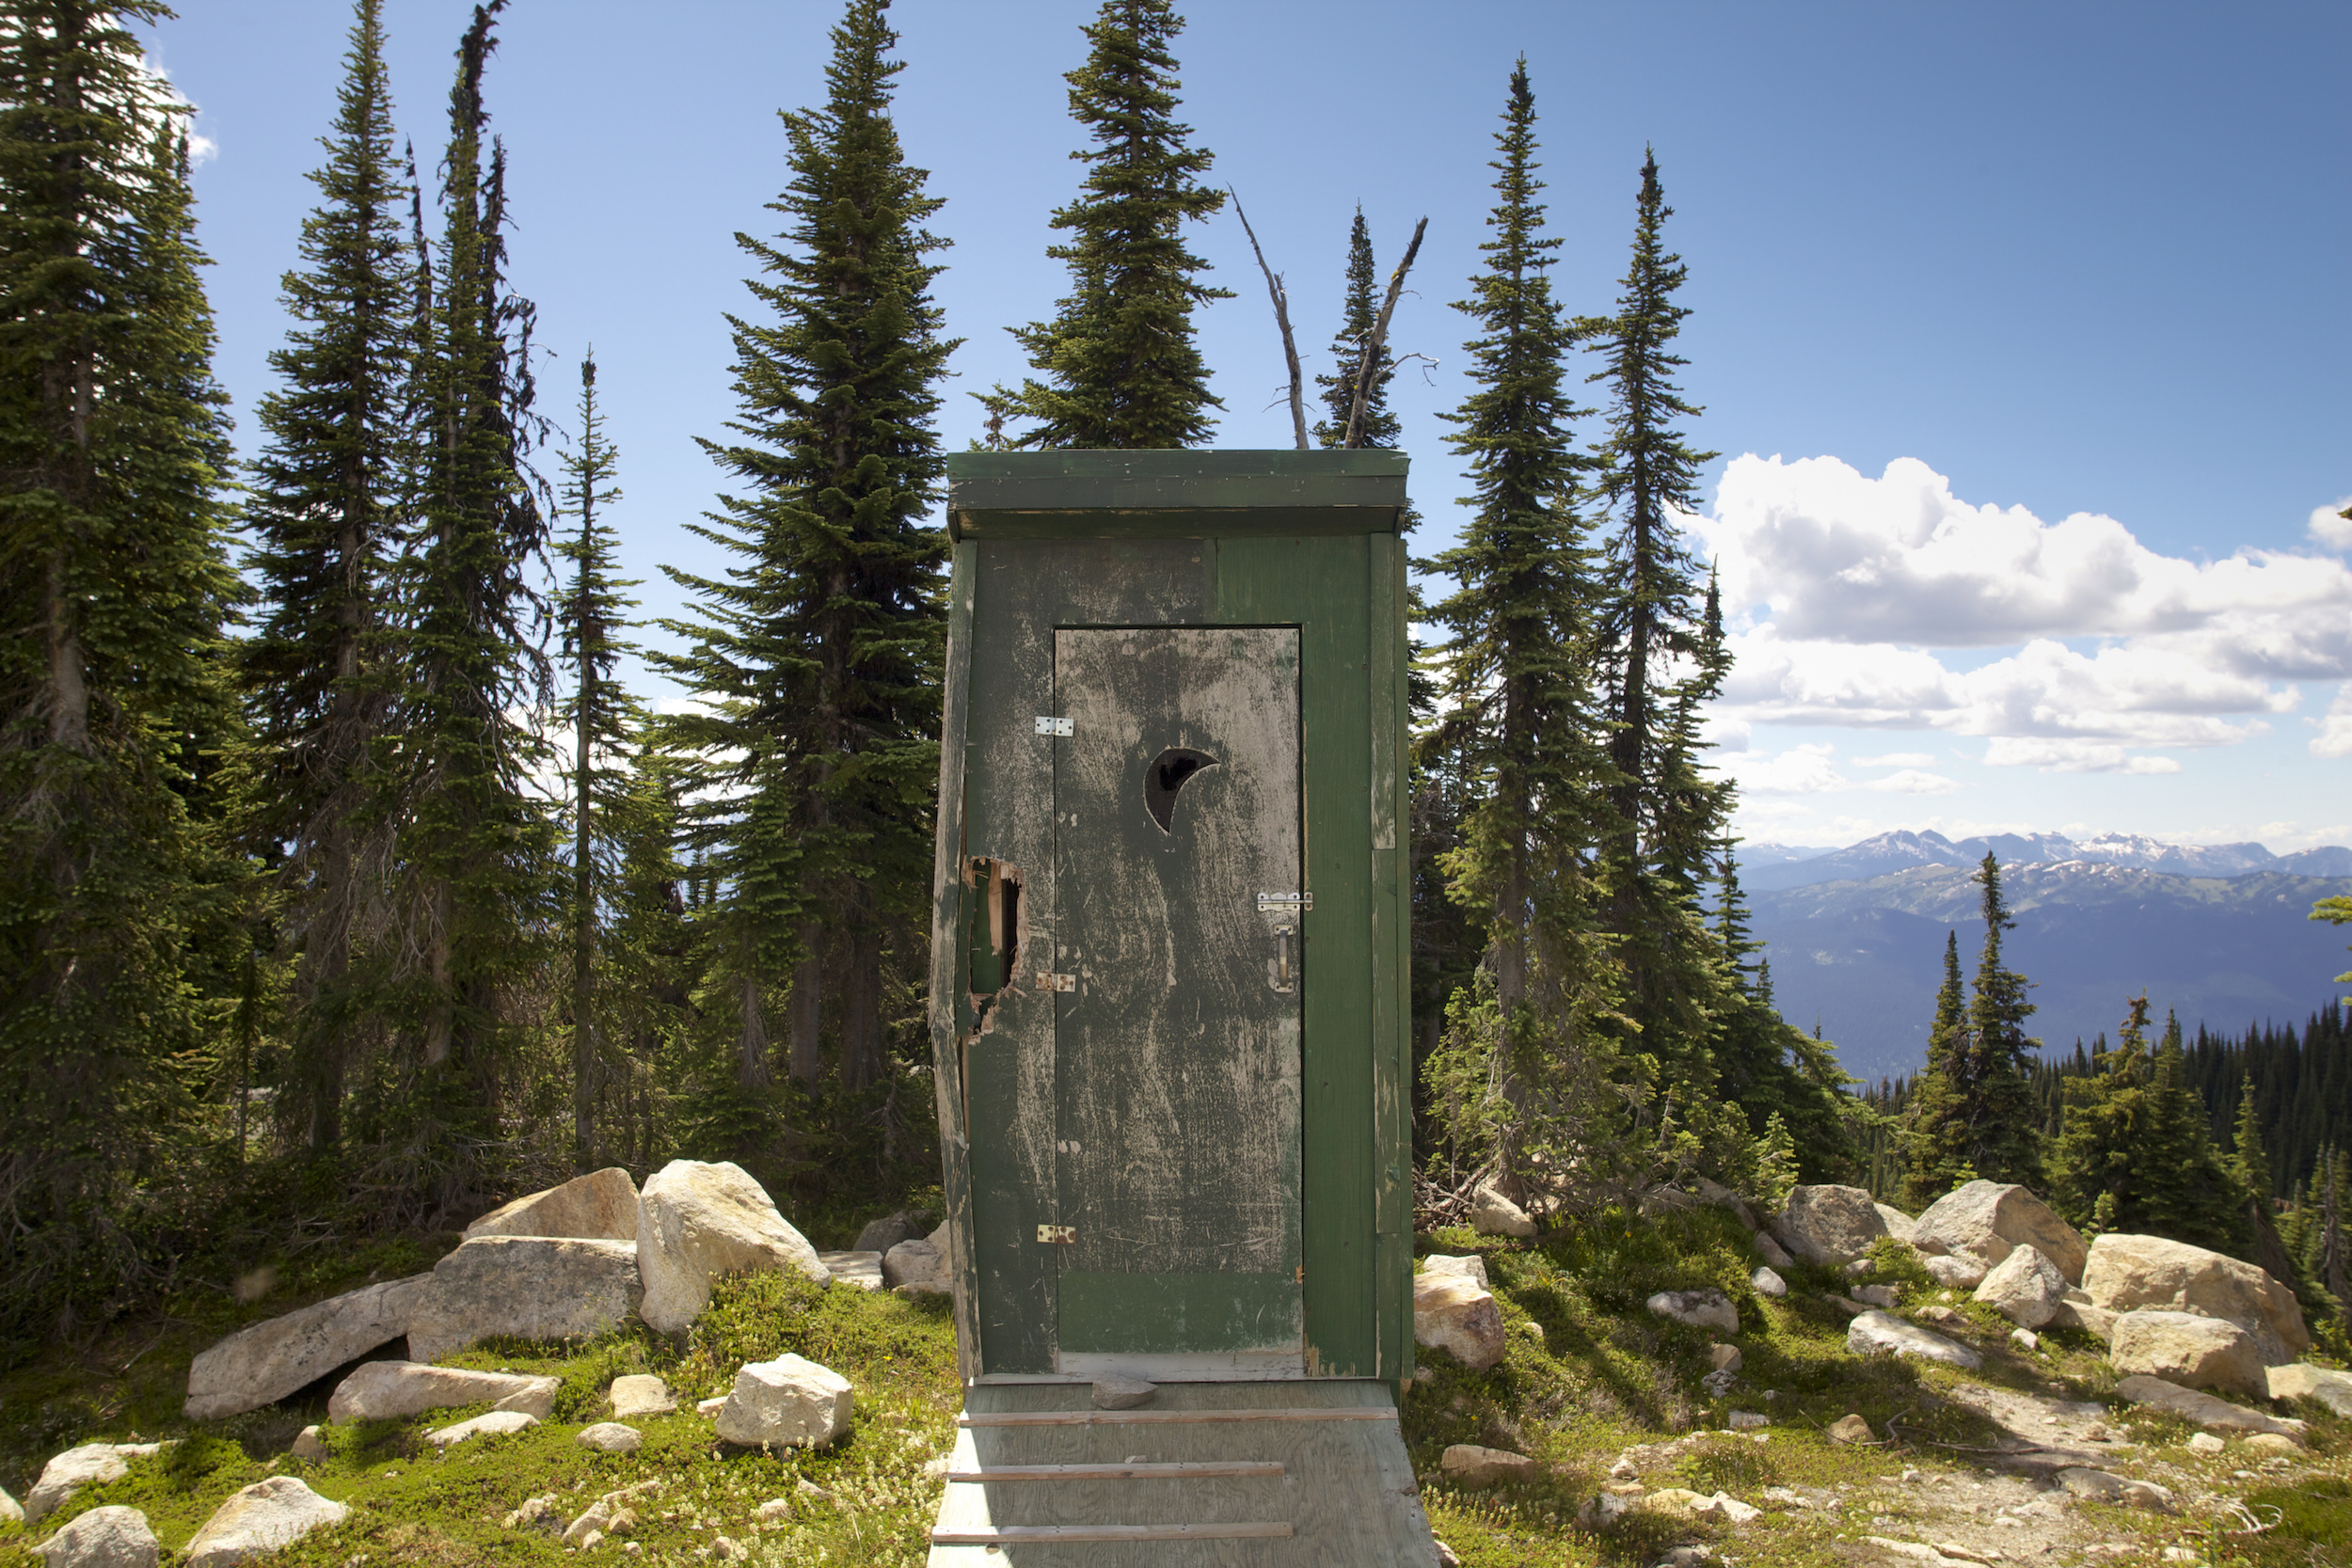 alpine outhouse